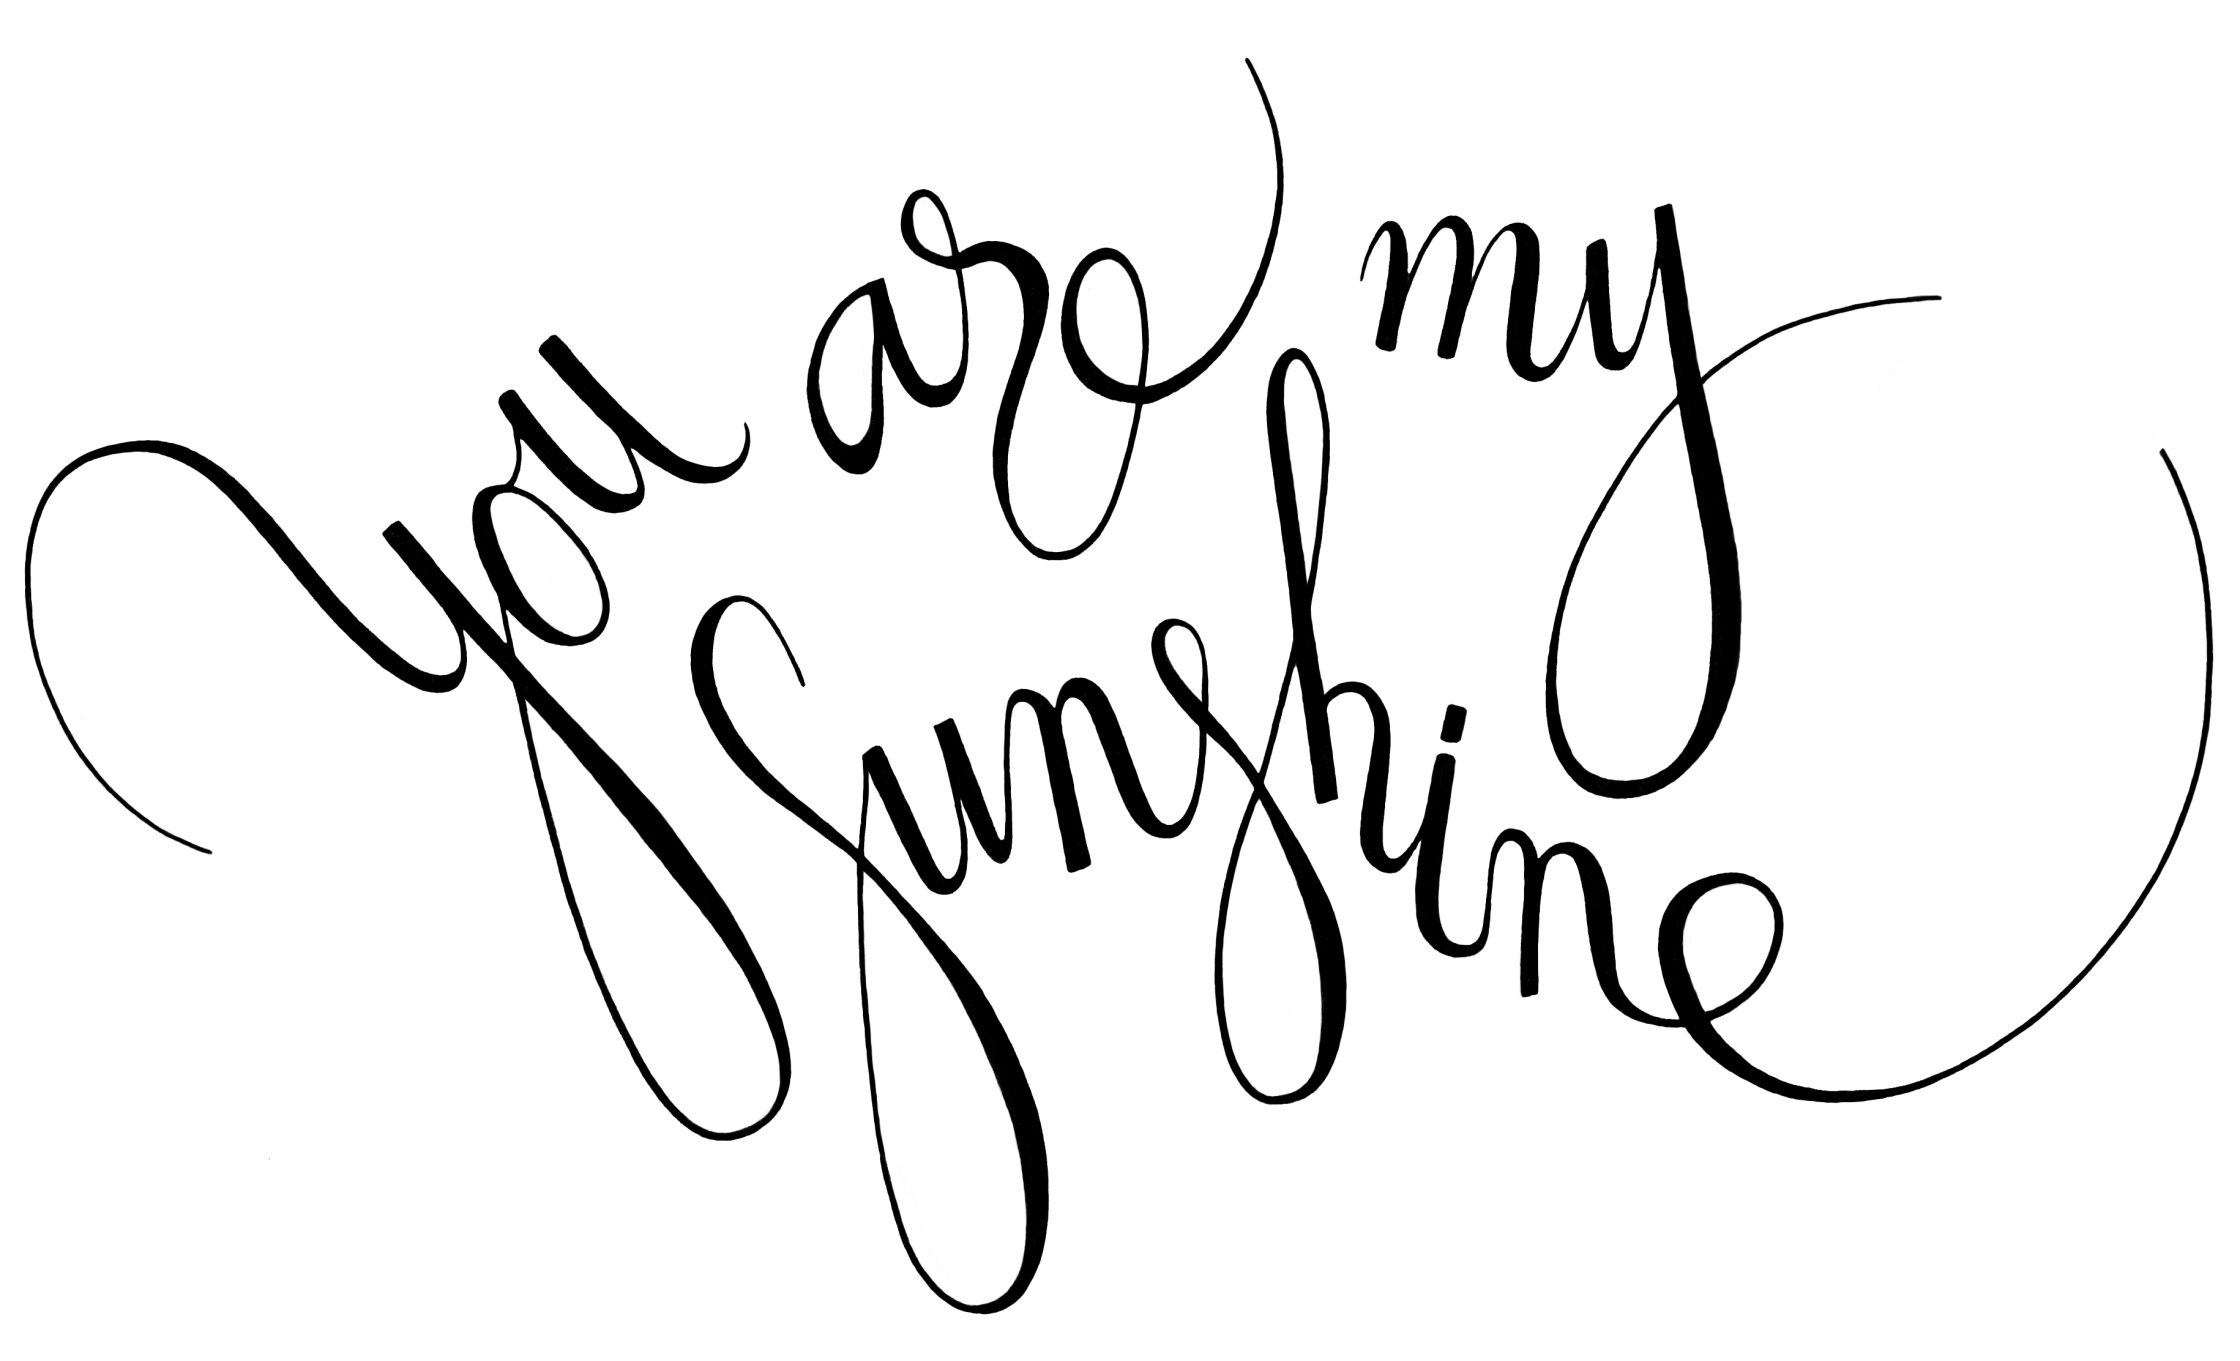 you are my sunshine column and crown debut art My Art Portfolio you are my sunshine